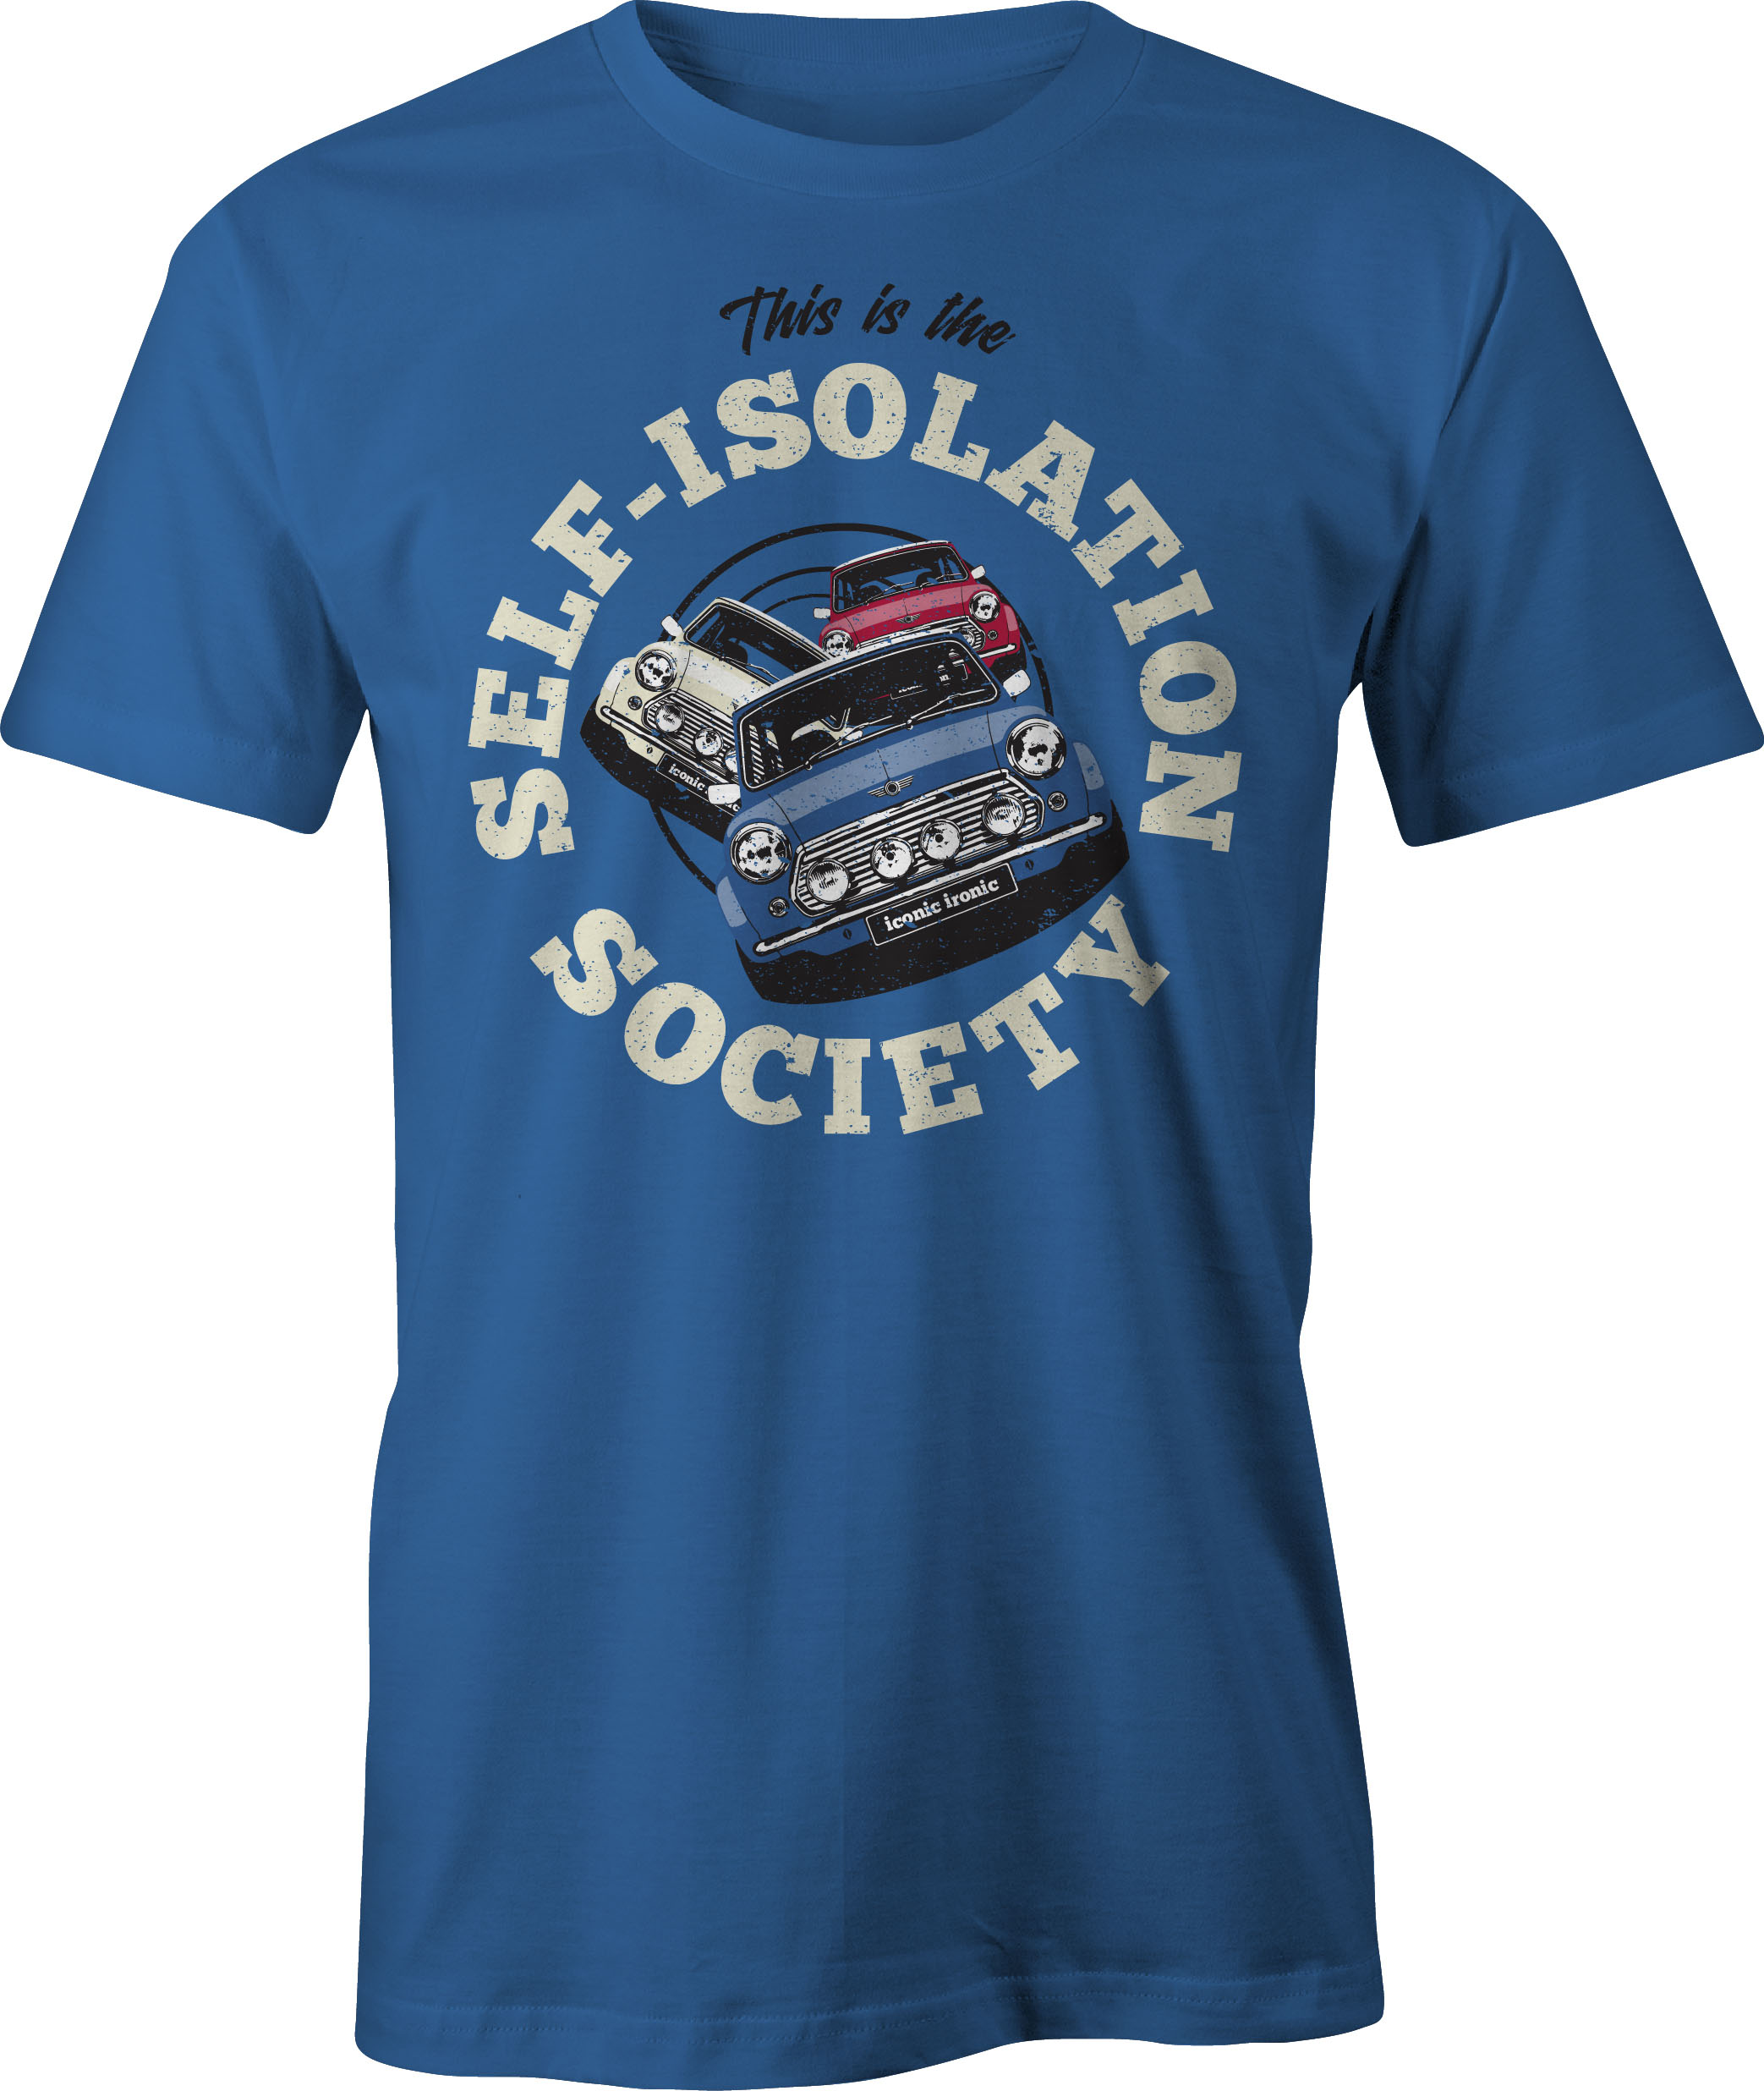 Self Isolation Society T Shirt in blue